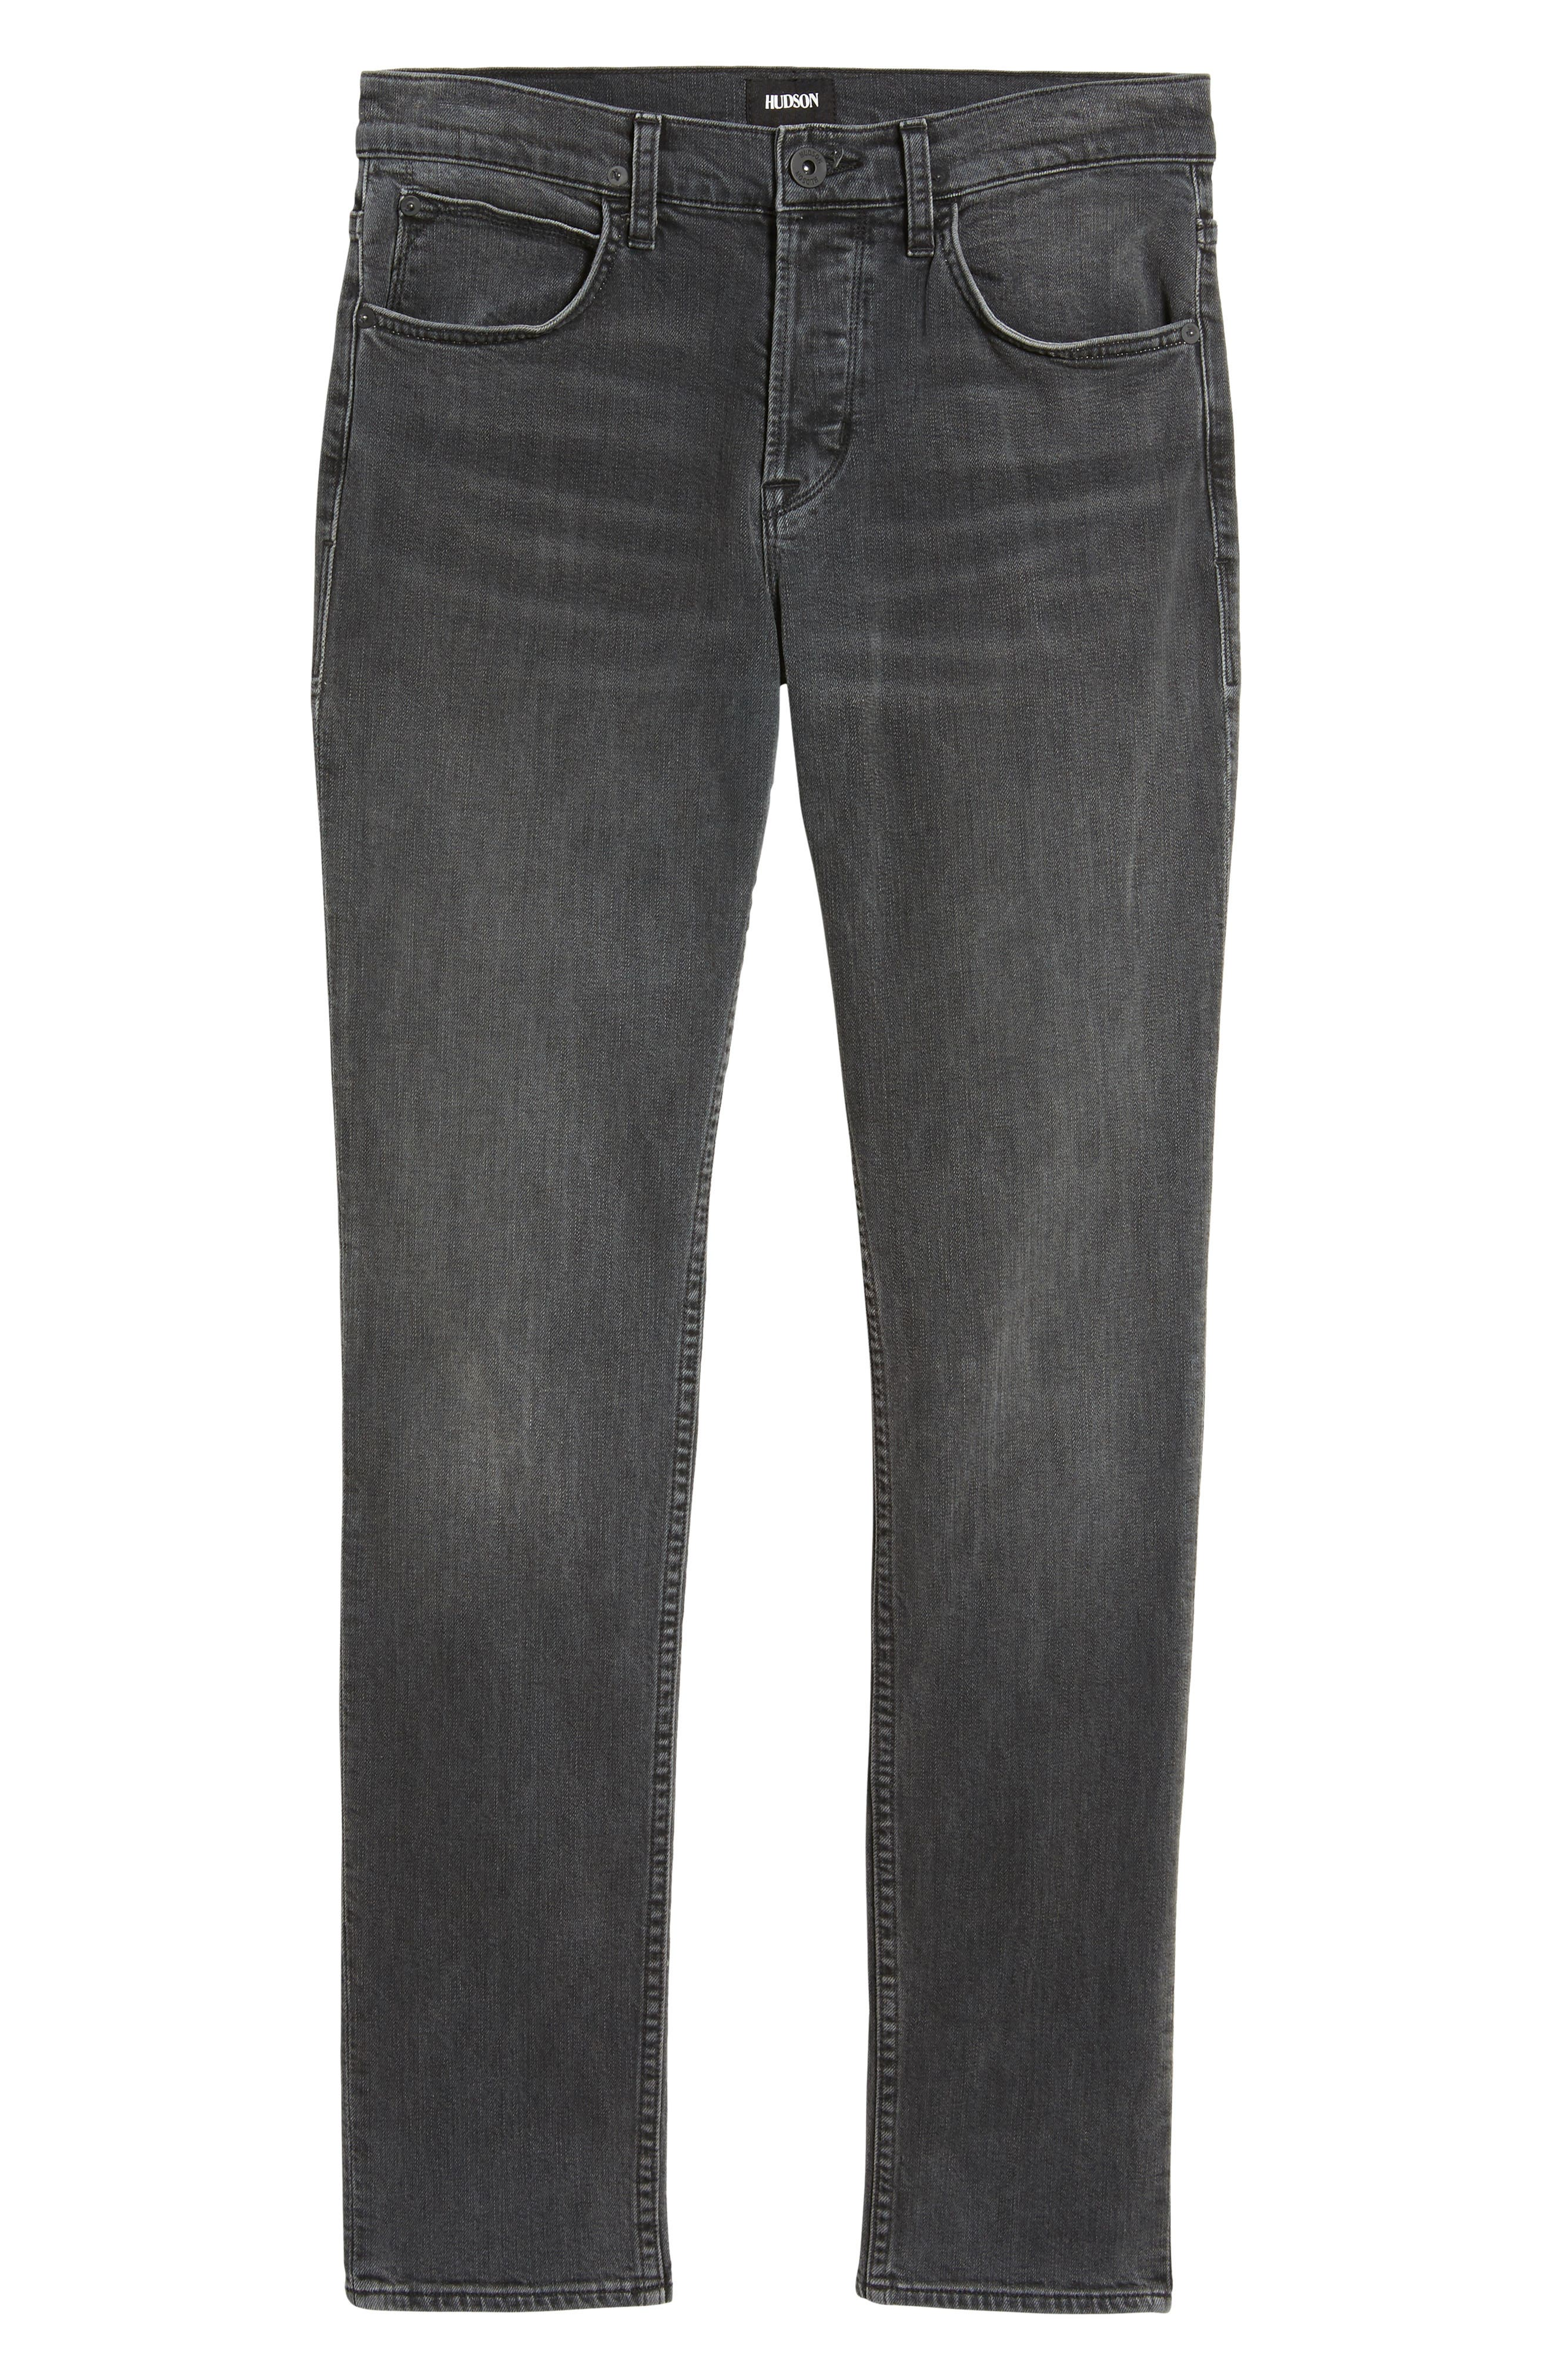 Axl Skinny Fit Jeans,                             Alternate thumbnail 6, color,                             020